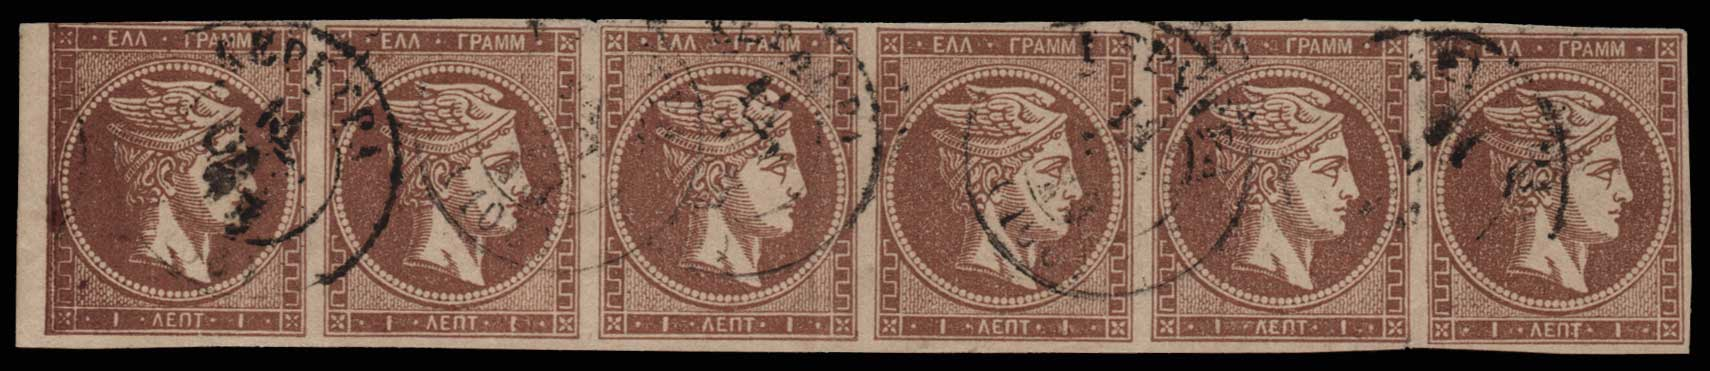 Lot 203 - -  LARGE HERMES HEAD 1867/1869 cleaned plates. -  Athens Auctions Public Auction 69 General Stamp Sale